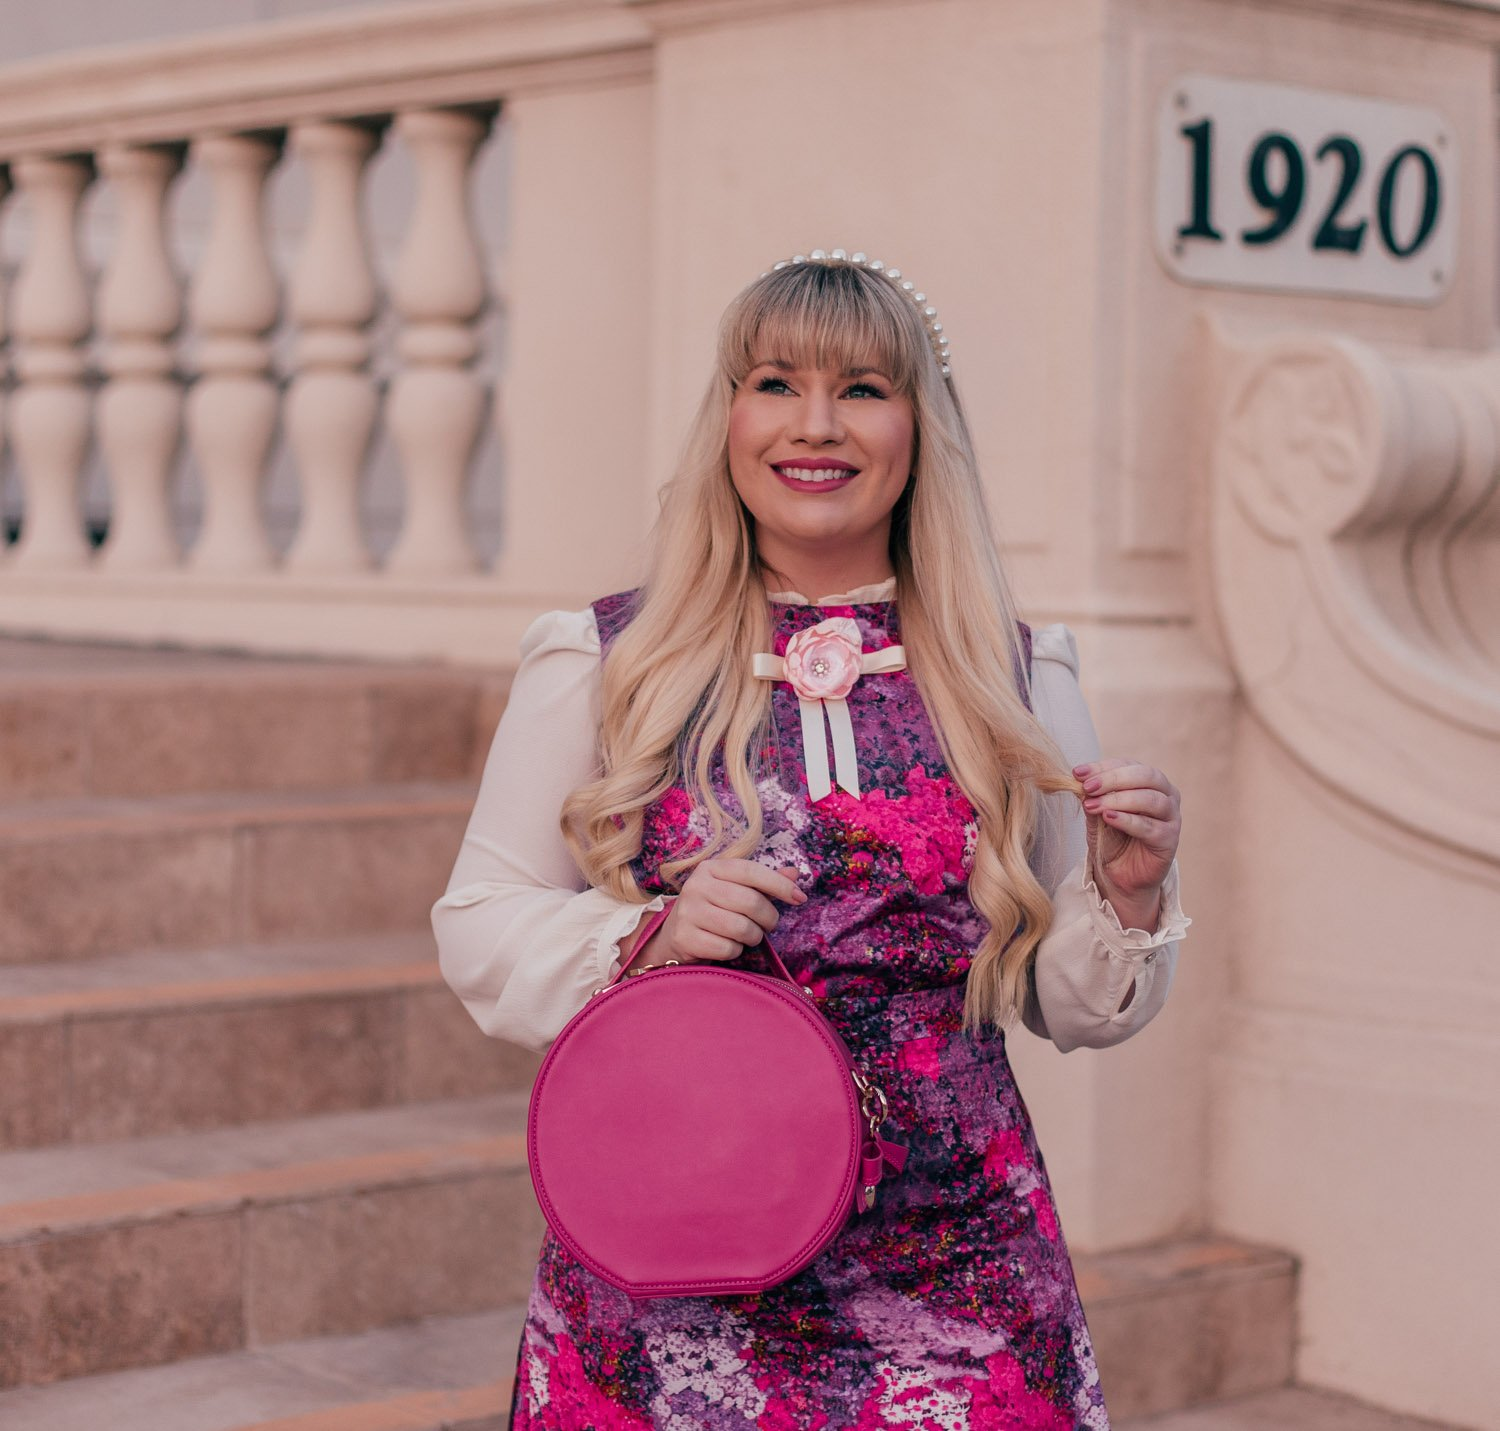 Feminine Fashion Blogger Elizabeth Hugen of Lizzie in Lace wears a hot pink girly outfit for spring and pearl headband